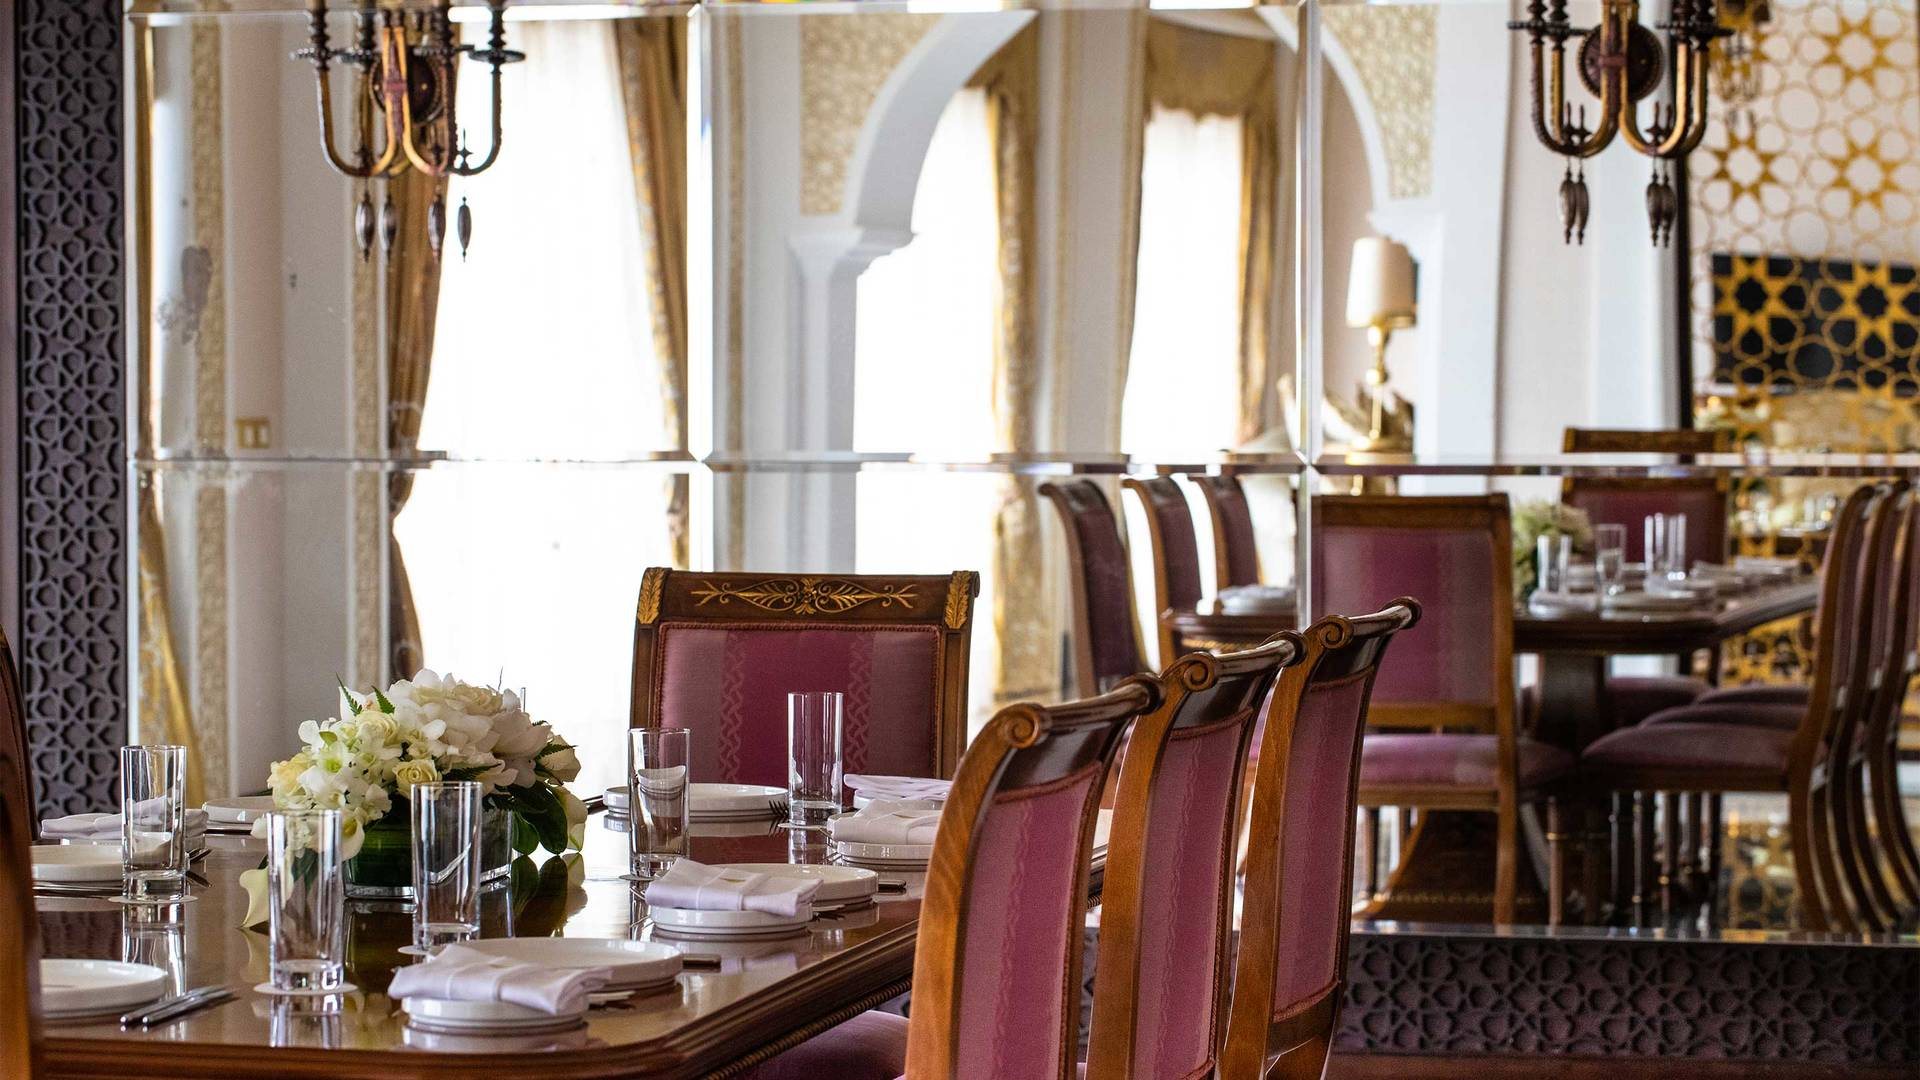 16-9_Jumeirah-Zabeel-Saray---Grand-Imperial-Suite---Dining-Area-Detail